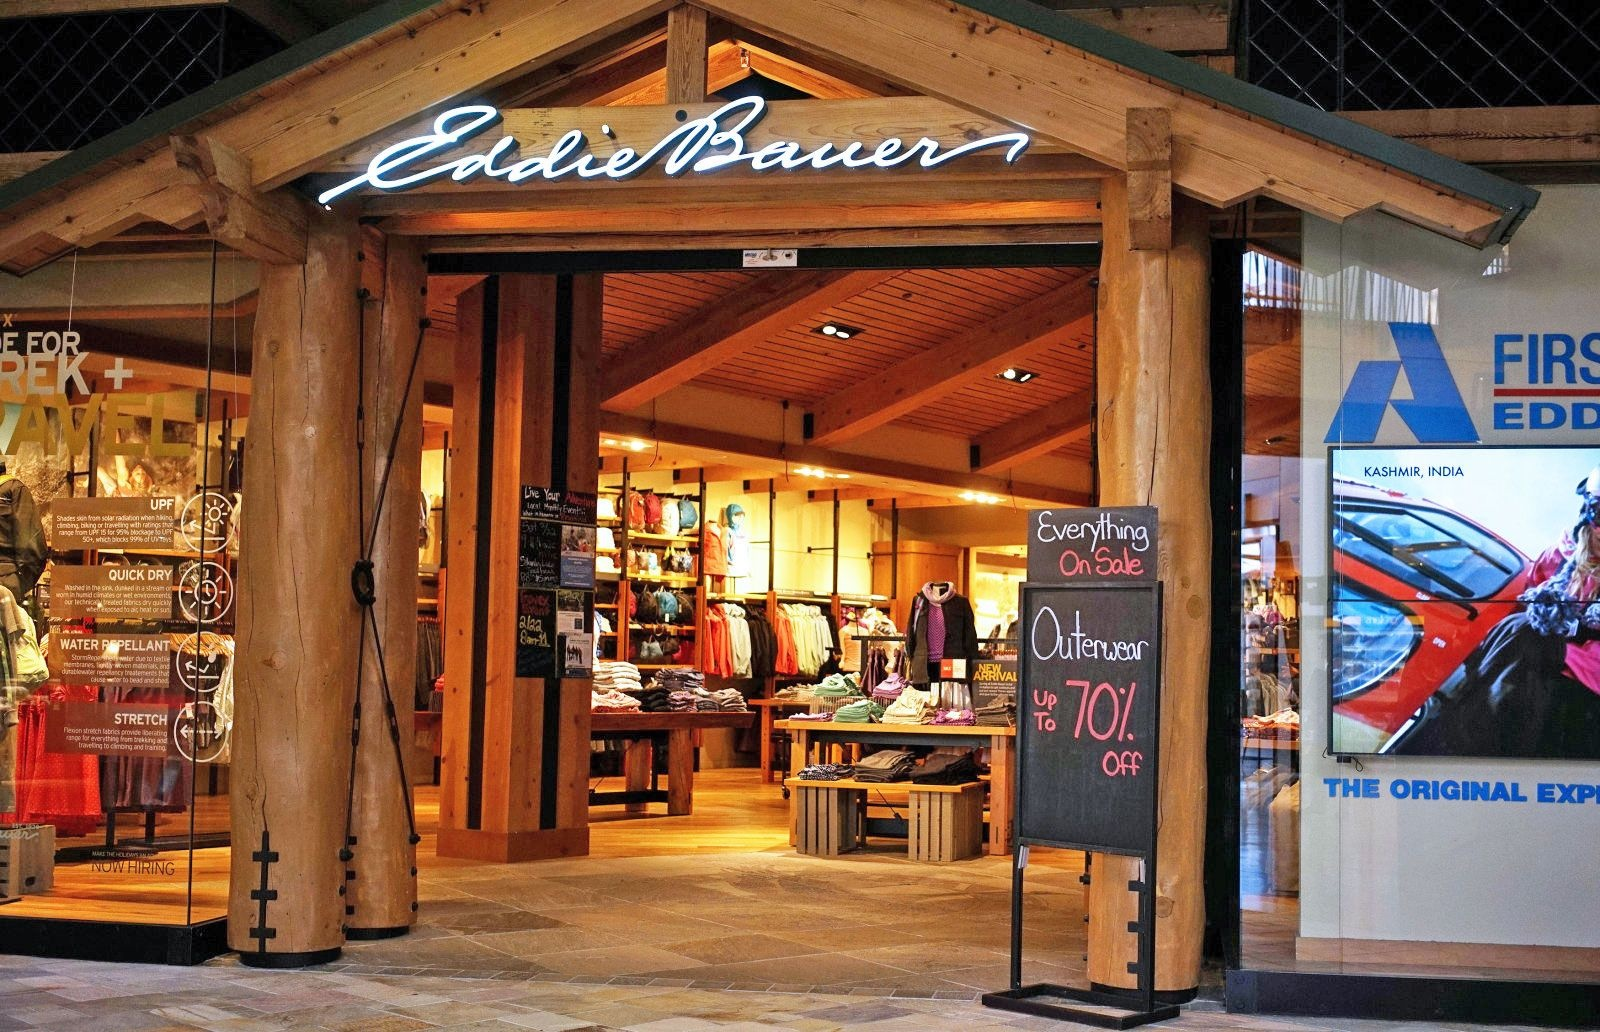 EDDIE BAUER: For over 100 years, Eddie Bauer has made apparel, footwear, and gear to inspire and enable you to Live Your Adventure